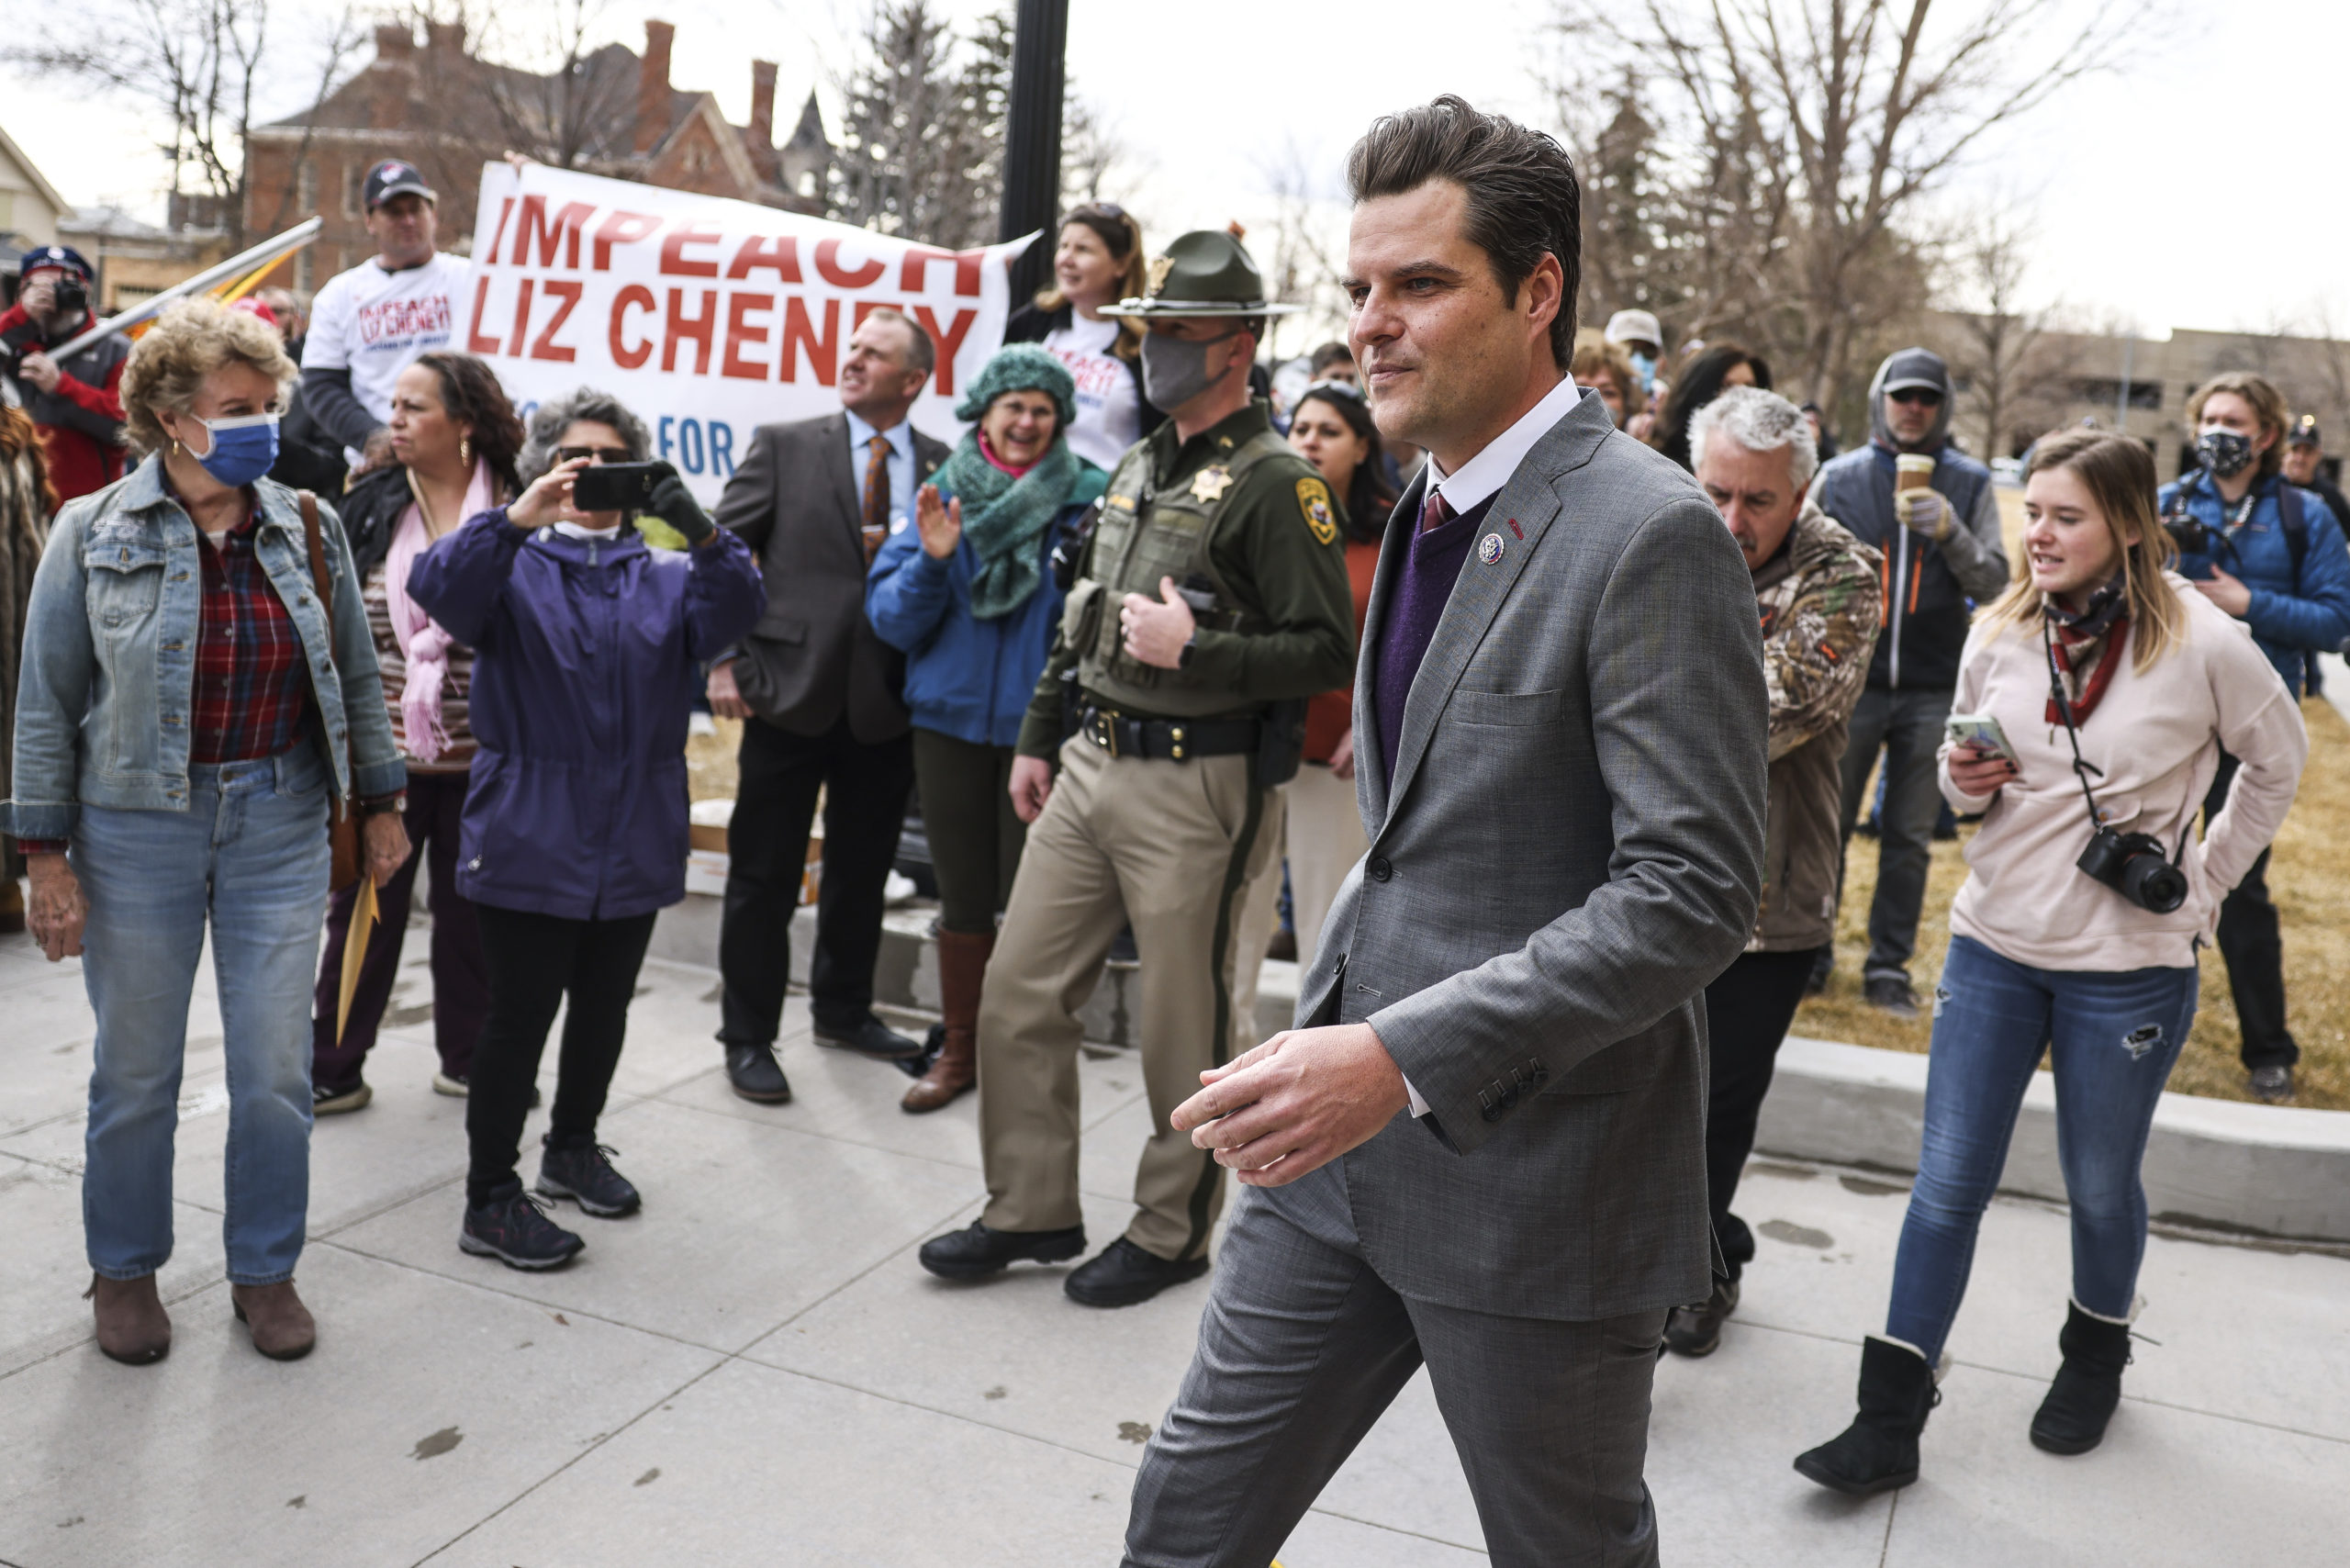 Rep. Matt Gaetz (R-FL) walks up to speak to a crowd during a rally against Rep. Liz Cheney (R-WY) on January 28, 2021 in Cheyenne, Wyoming. (Michael Ciaglo/Getty Images)